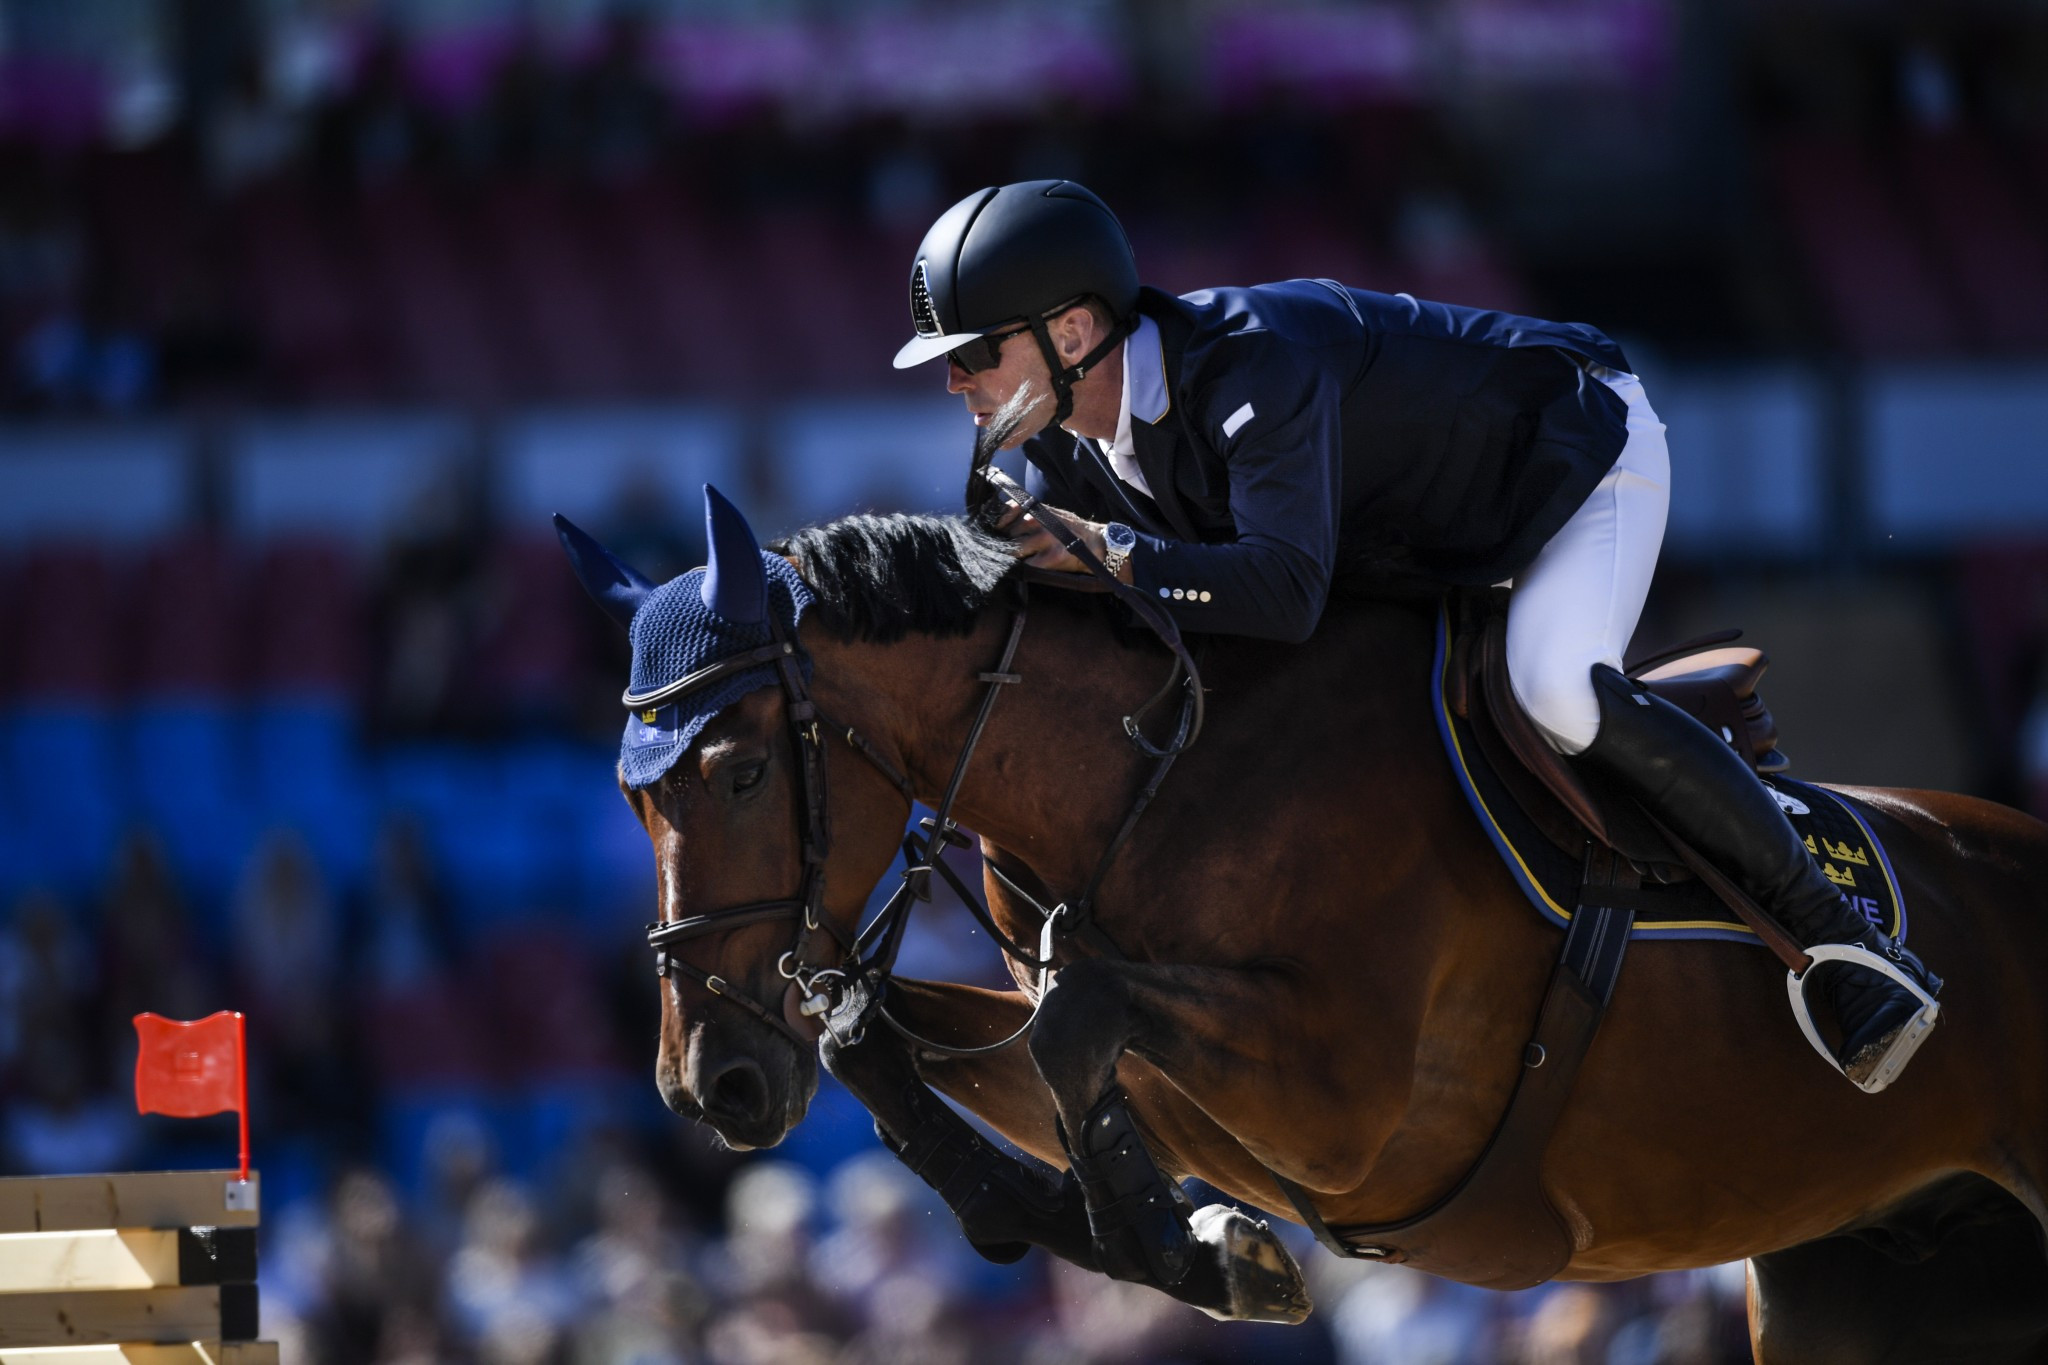 Fredricson holds on for individual jumping glory at FEI European Championships